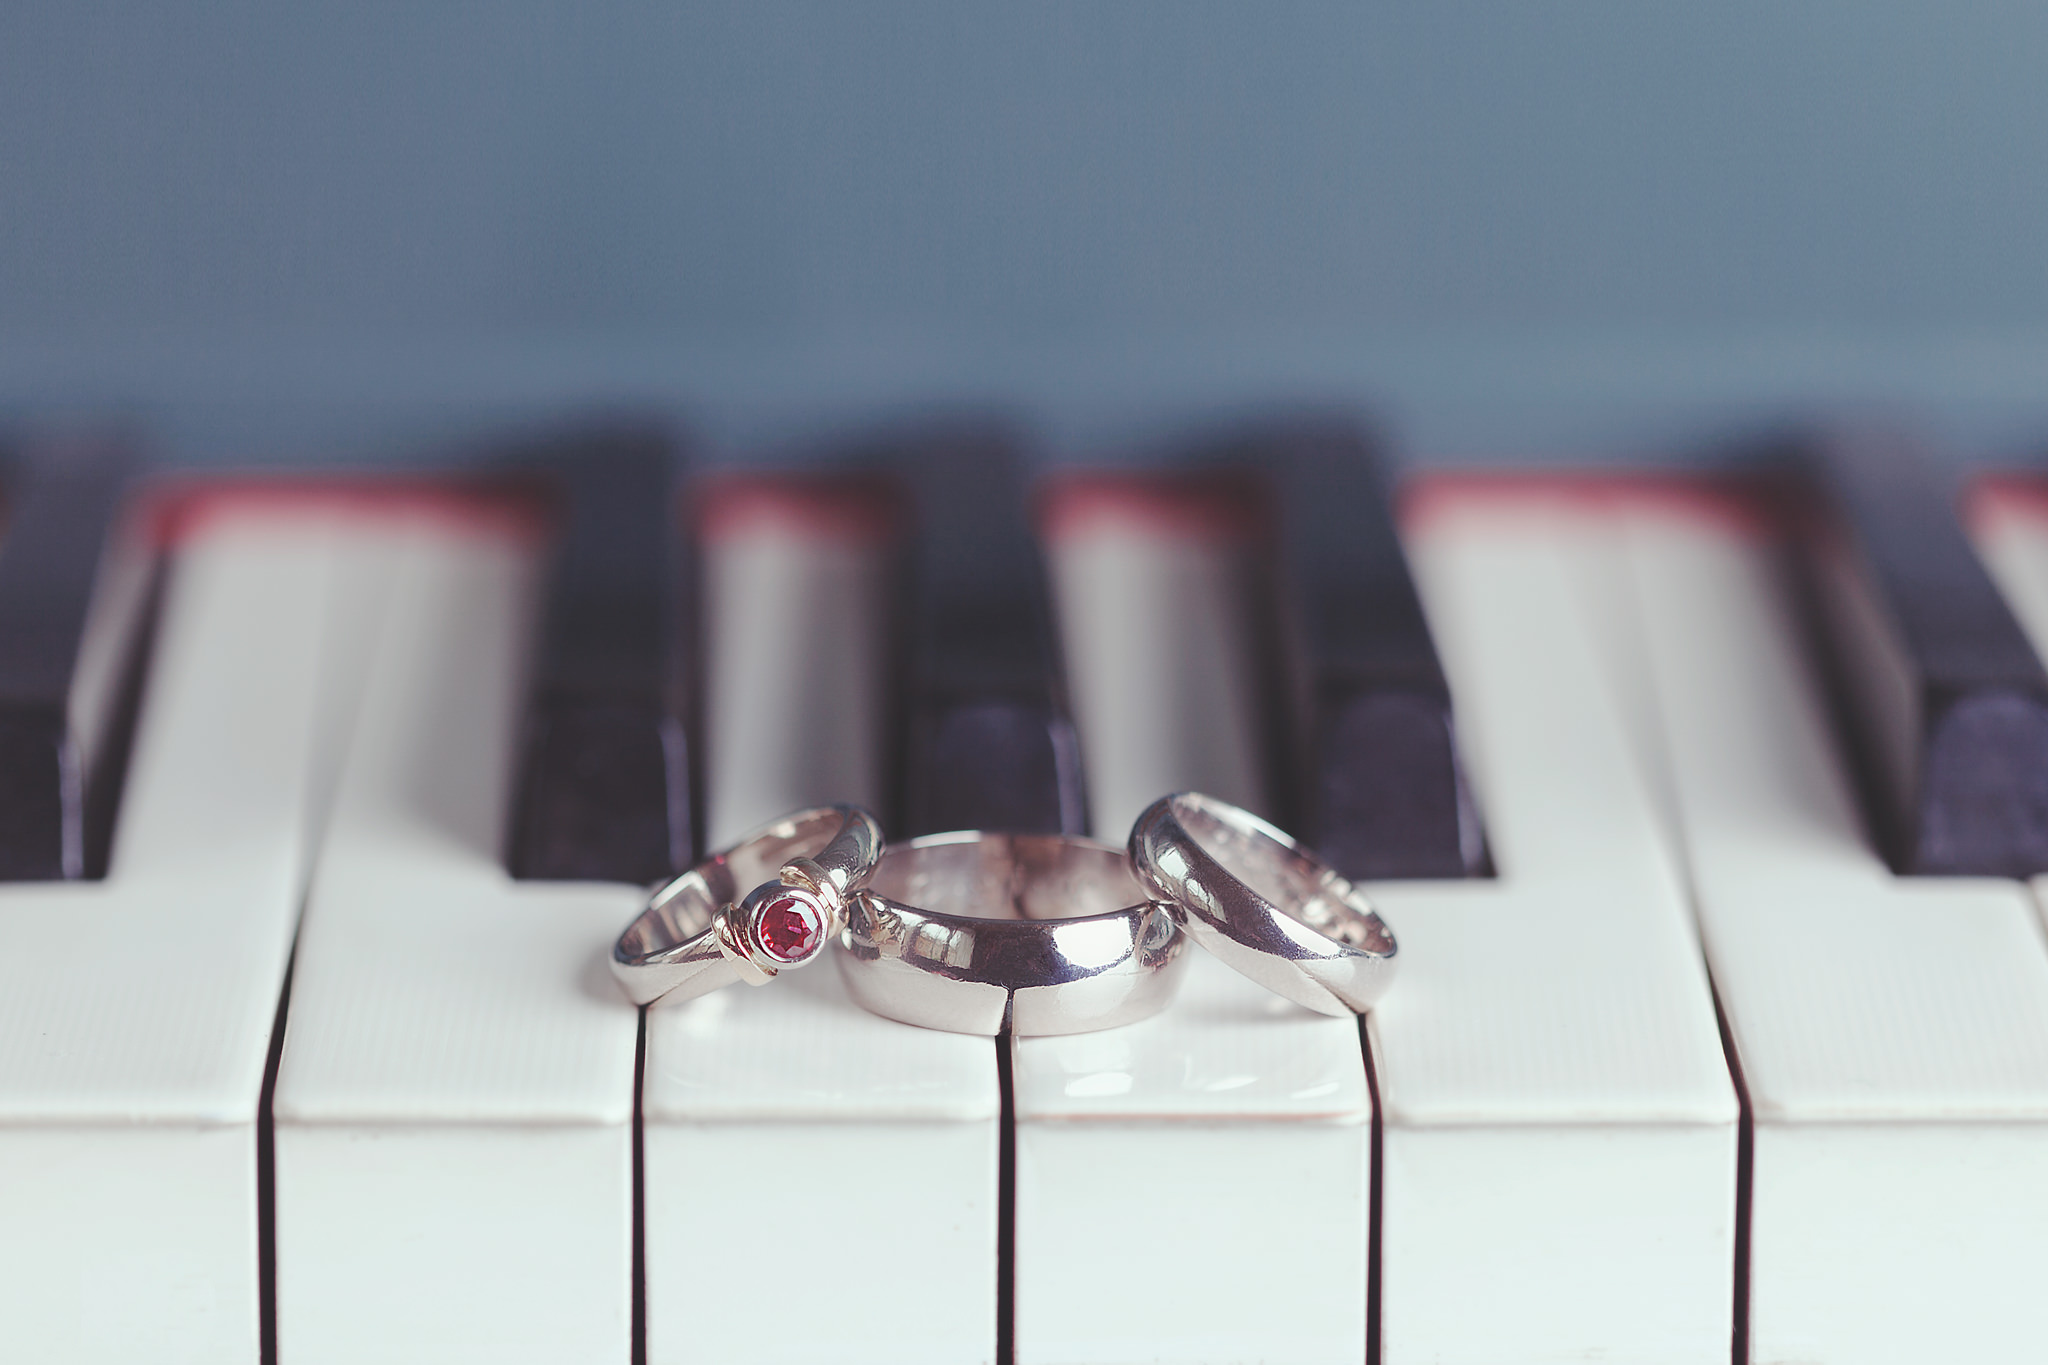 Painted piano and photoworks